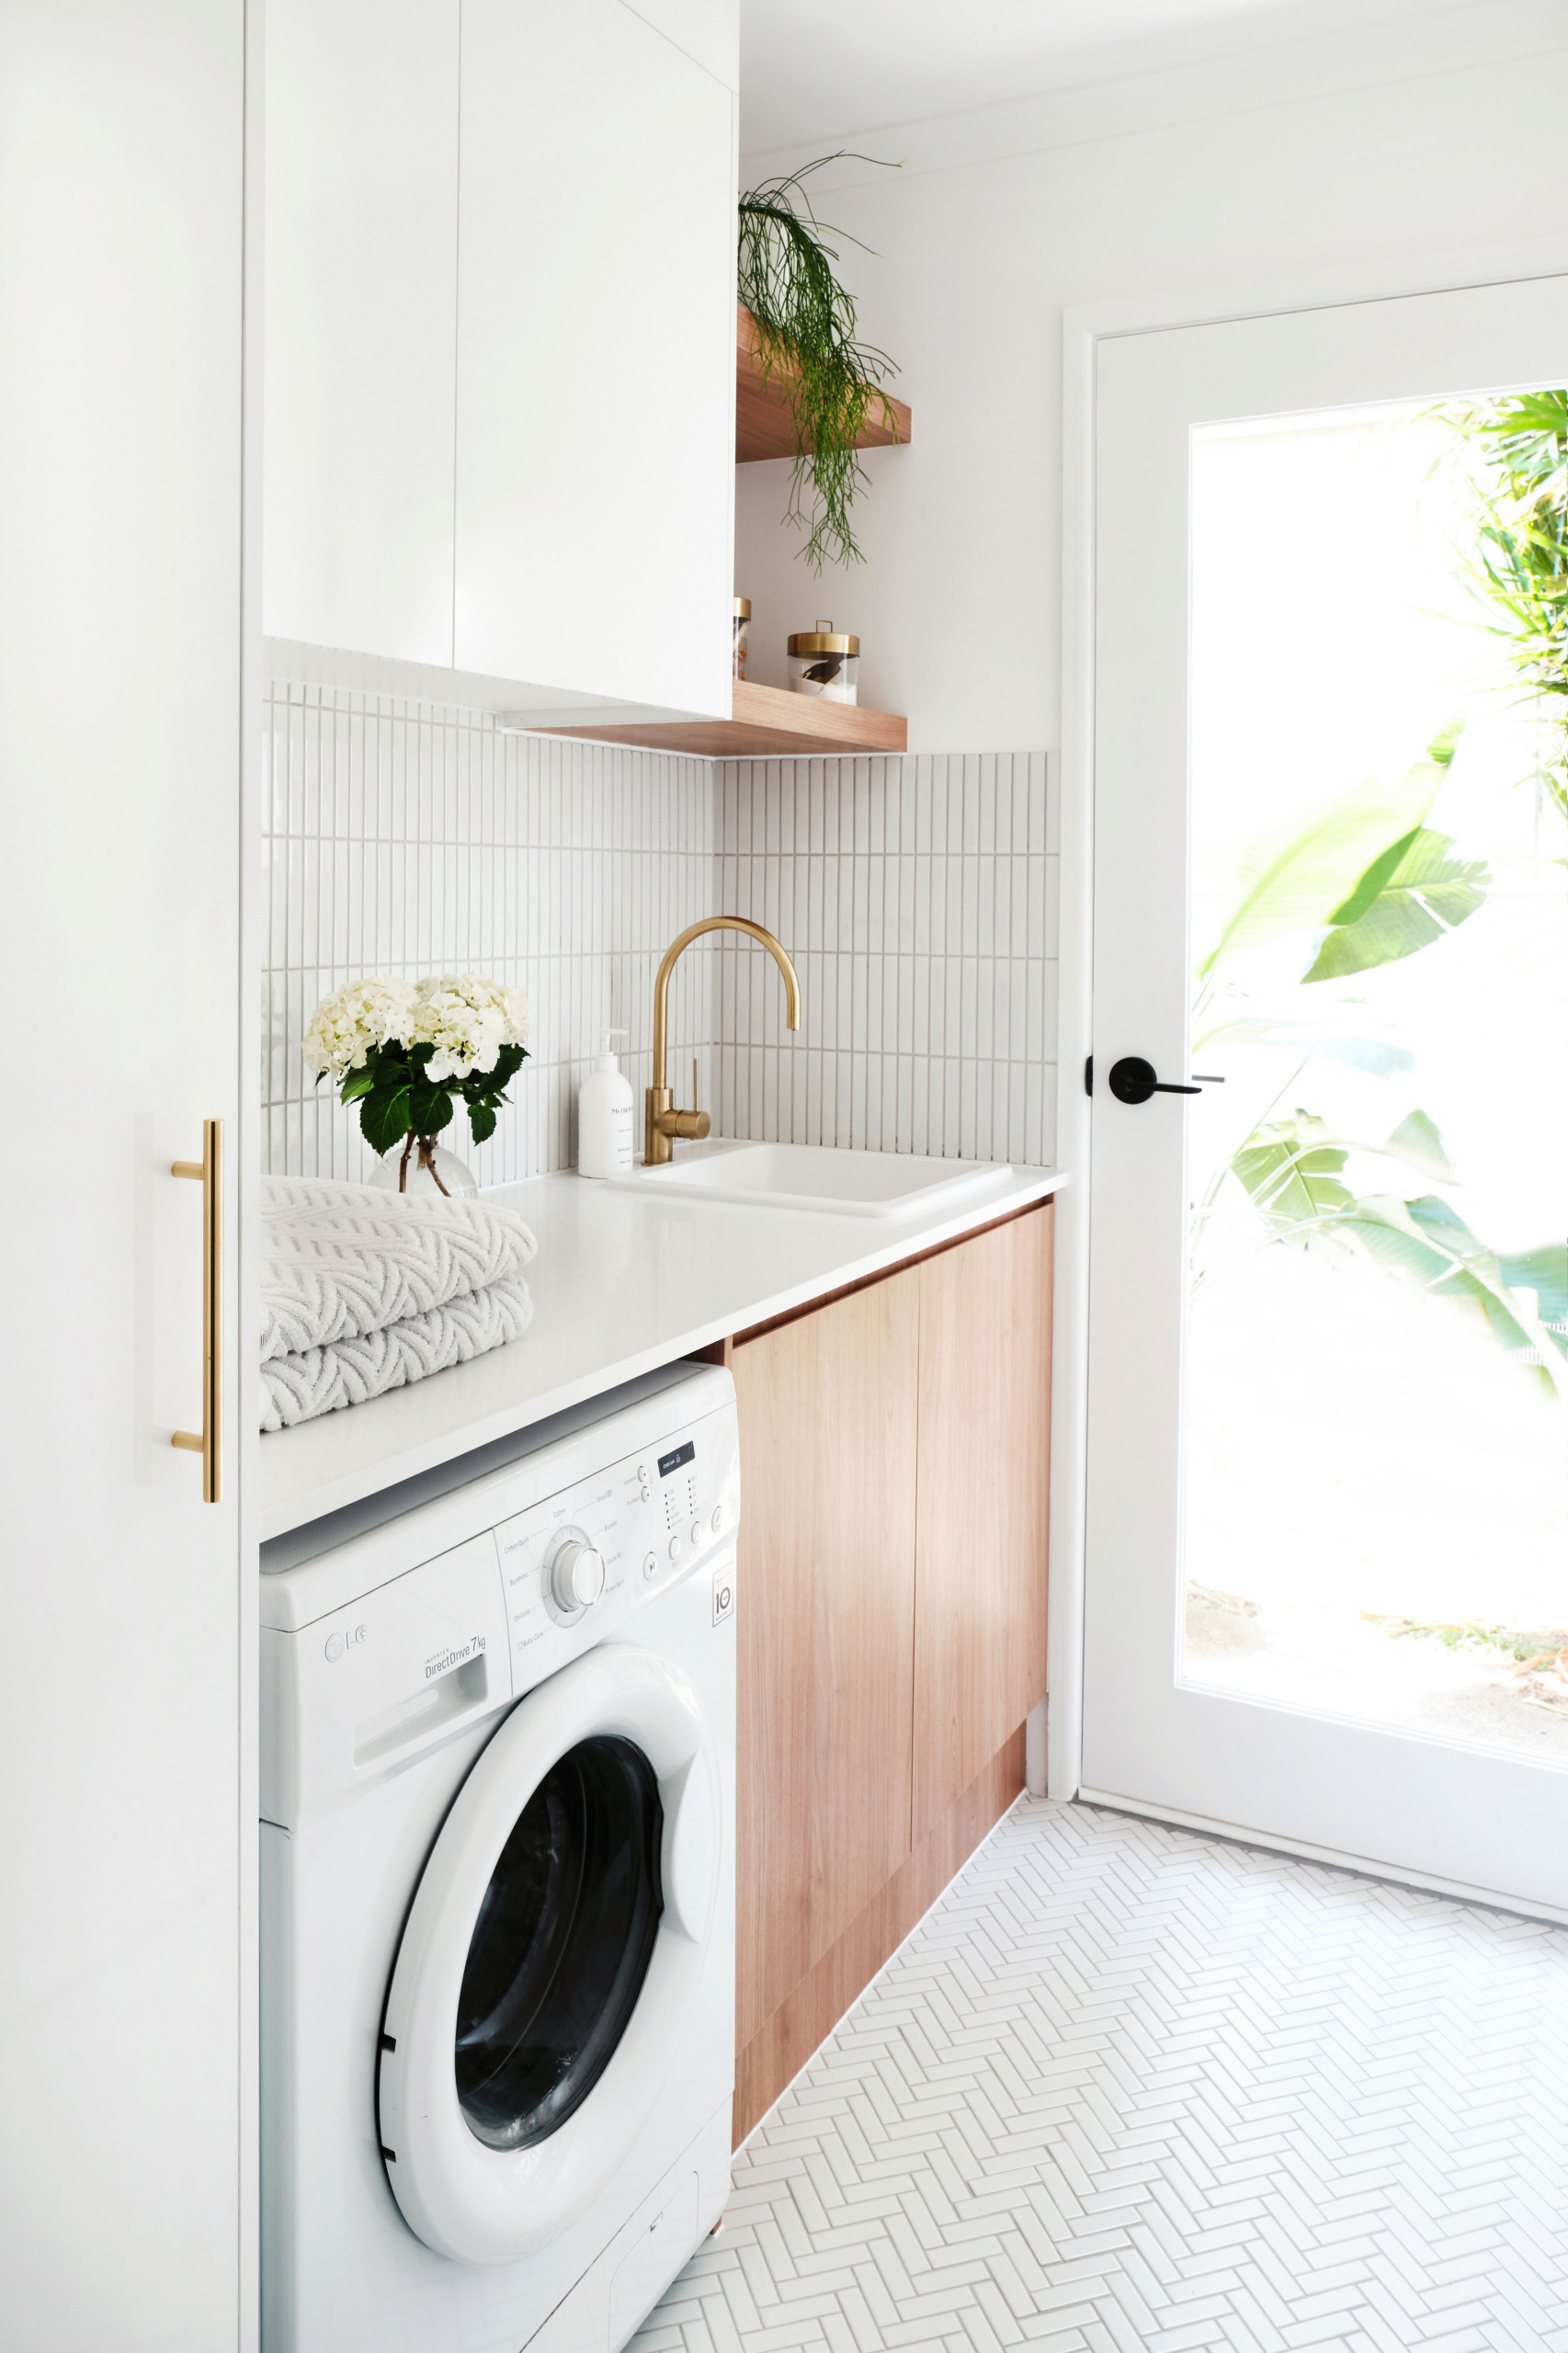 75 Beautiful Laundry Room With Light Wood Cabinets Pictures Ideas February 2021 Houzz